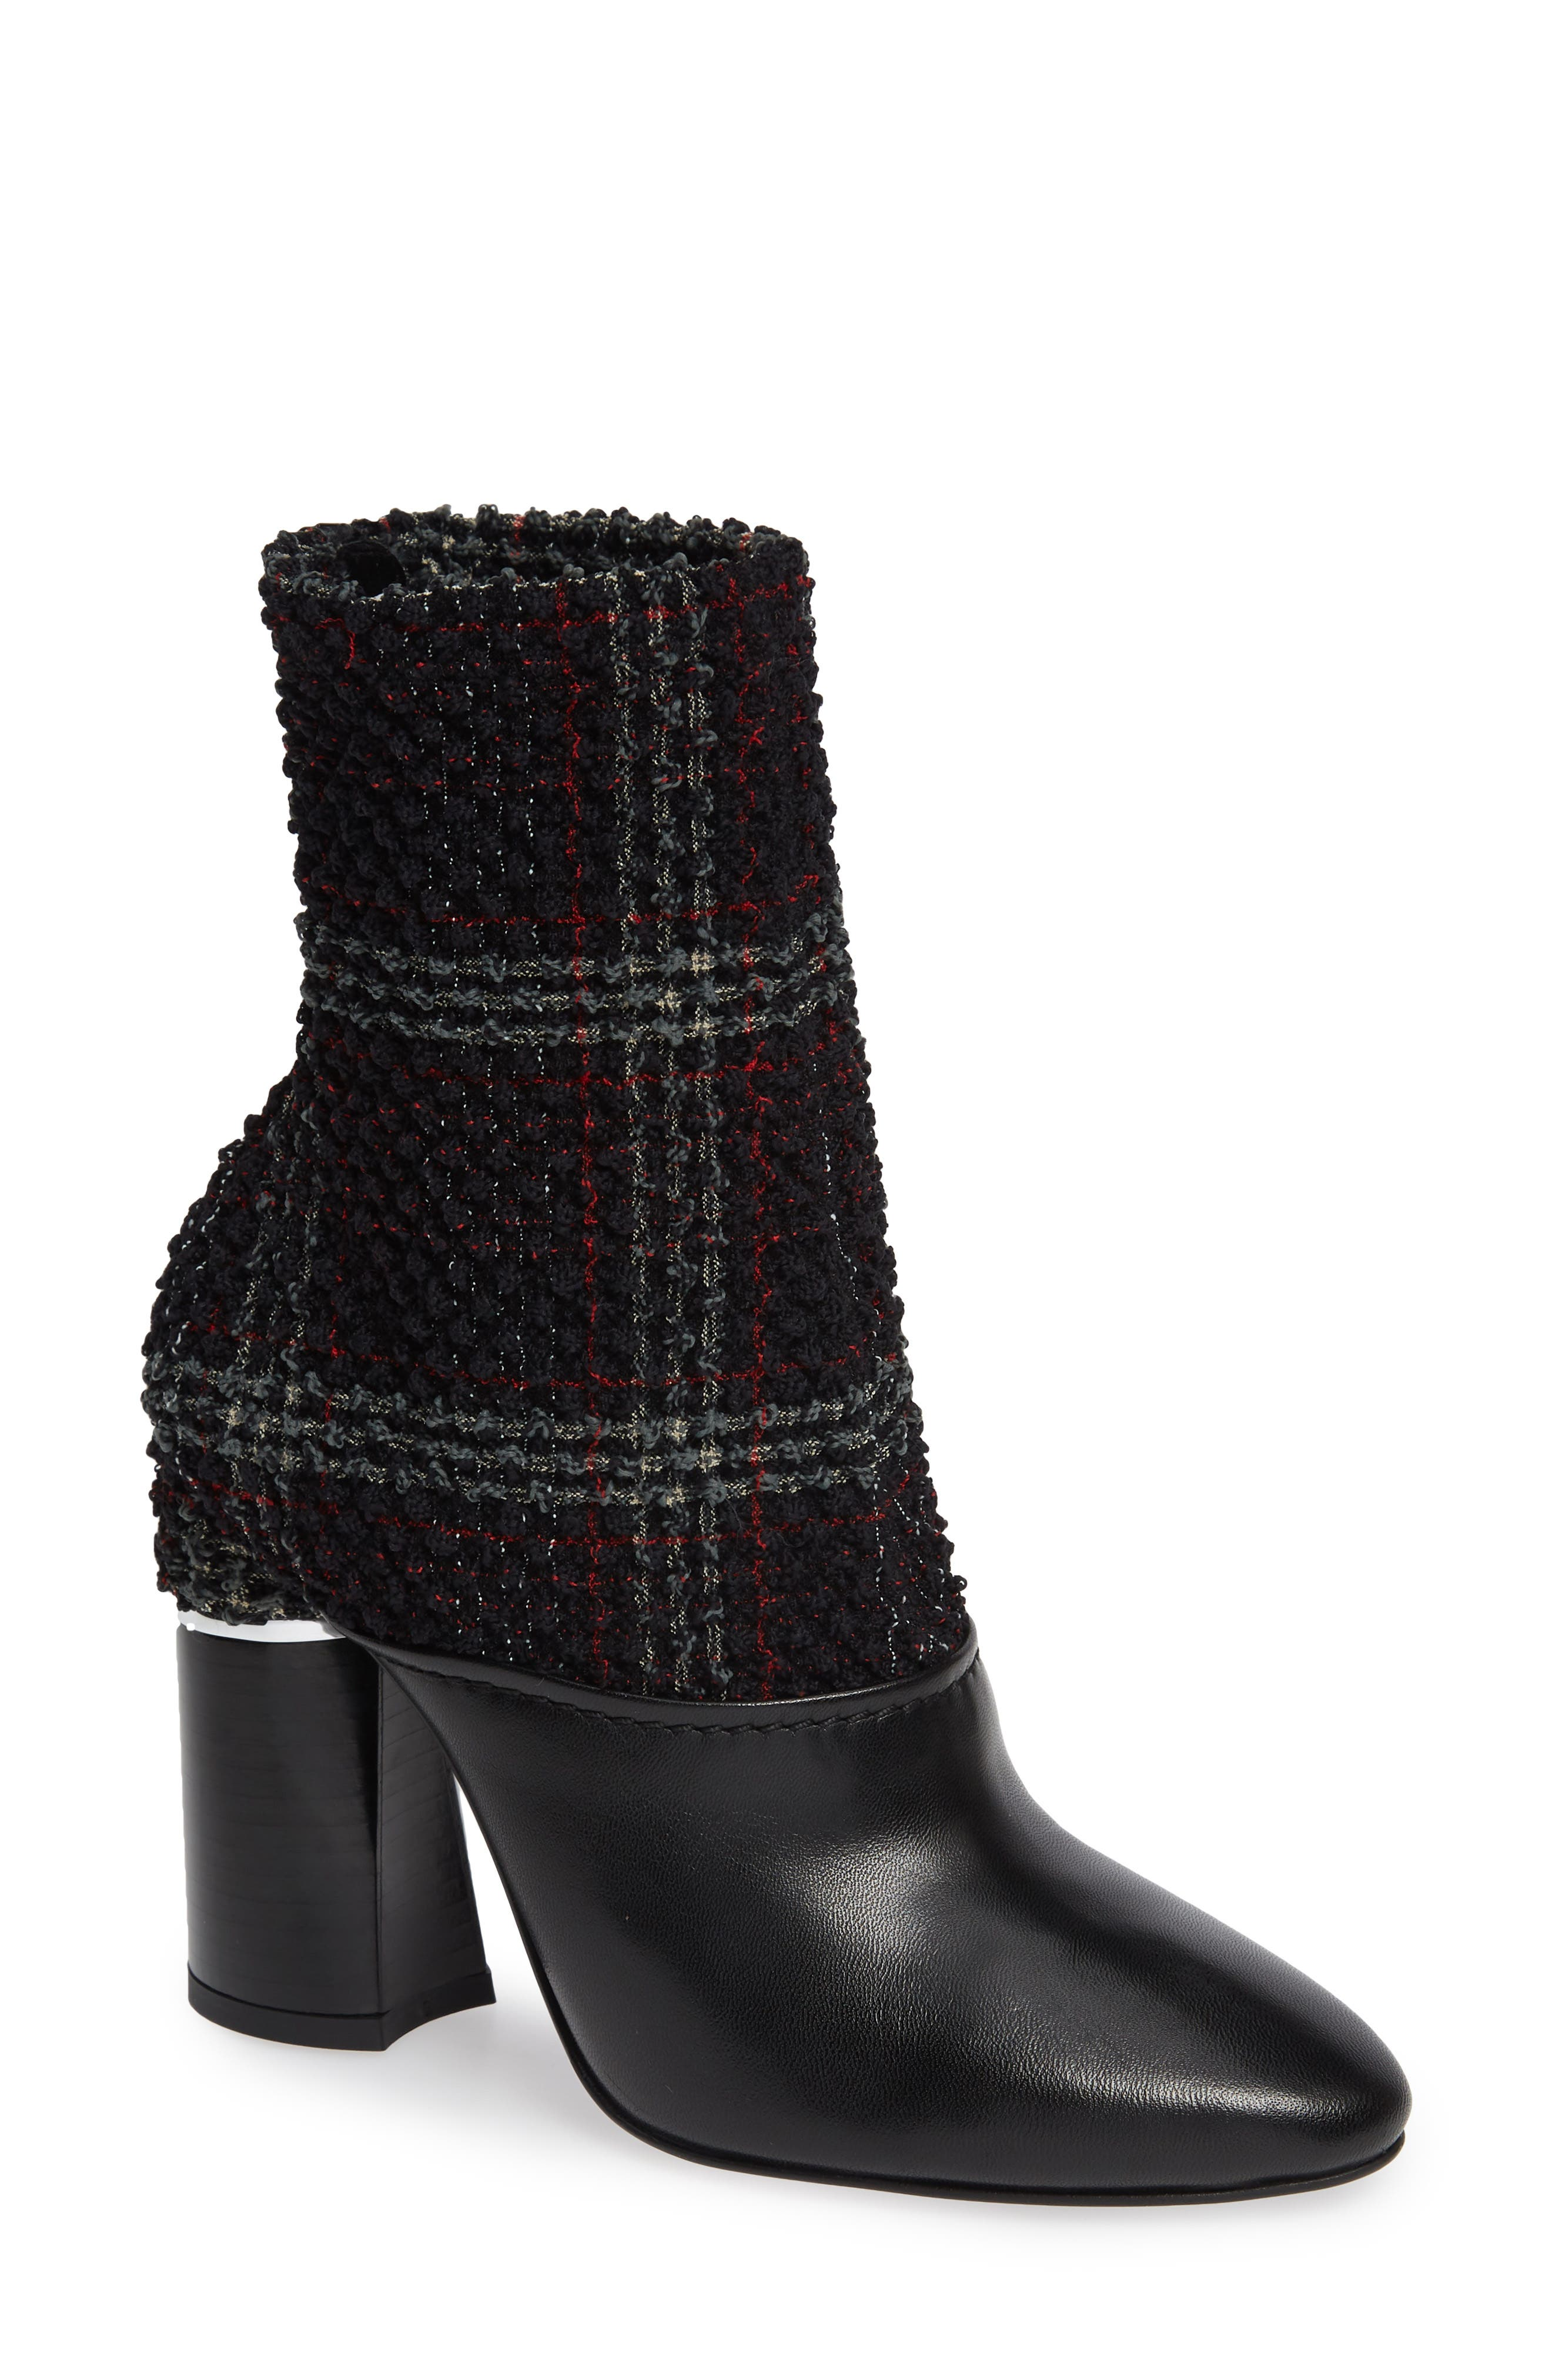 Kyoto Leather Bootie,                         Main,                         color, BLACK/ GREEN/ RED CHECK